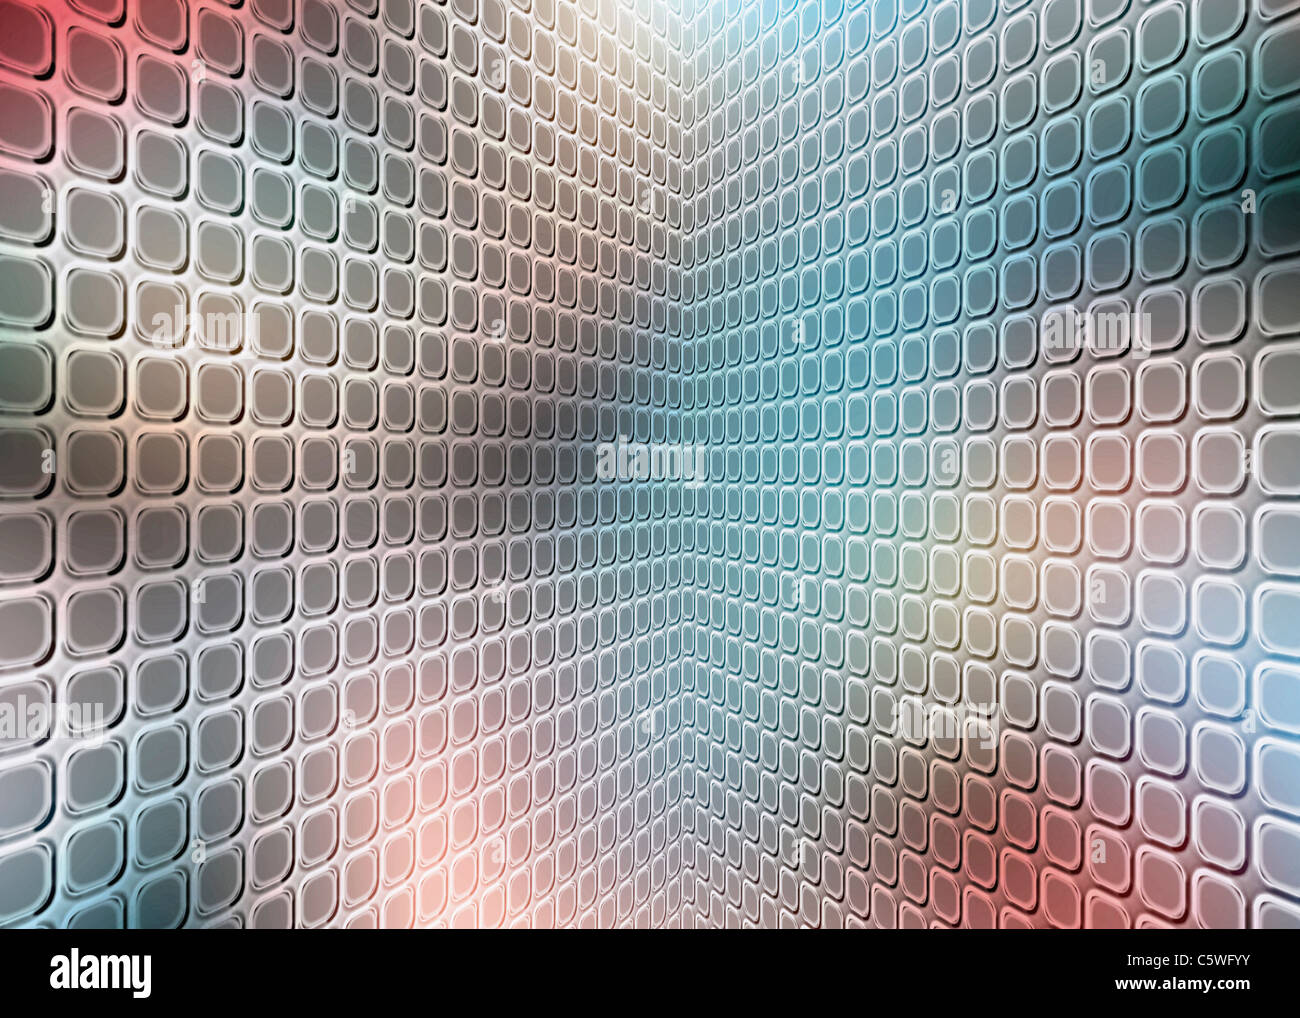 Tuile Perspective, full frame Photo Stock